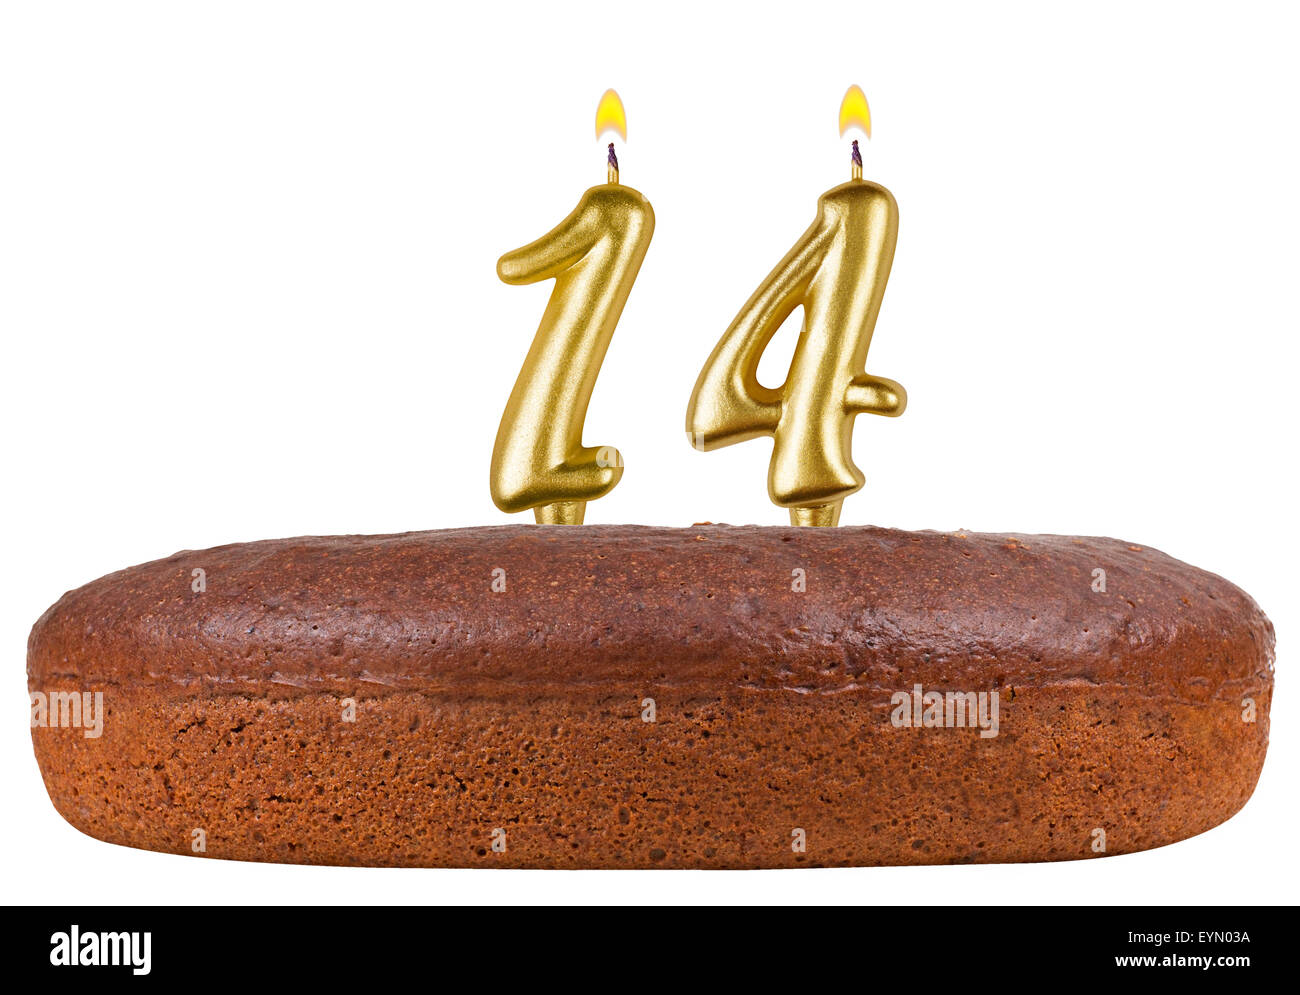 Birthday Cake With Candles Number 14 Isolated On White Background